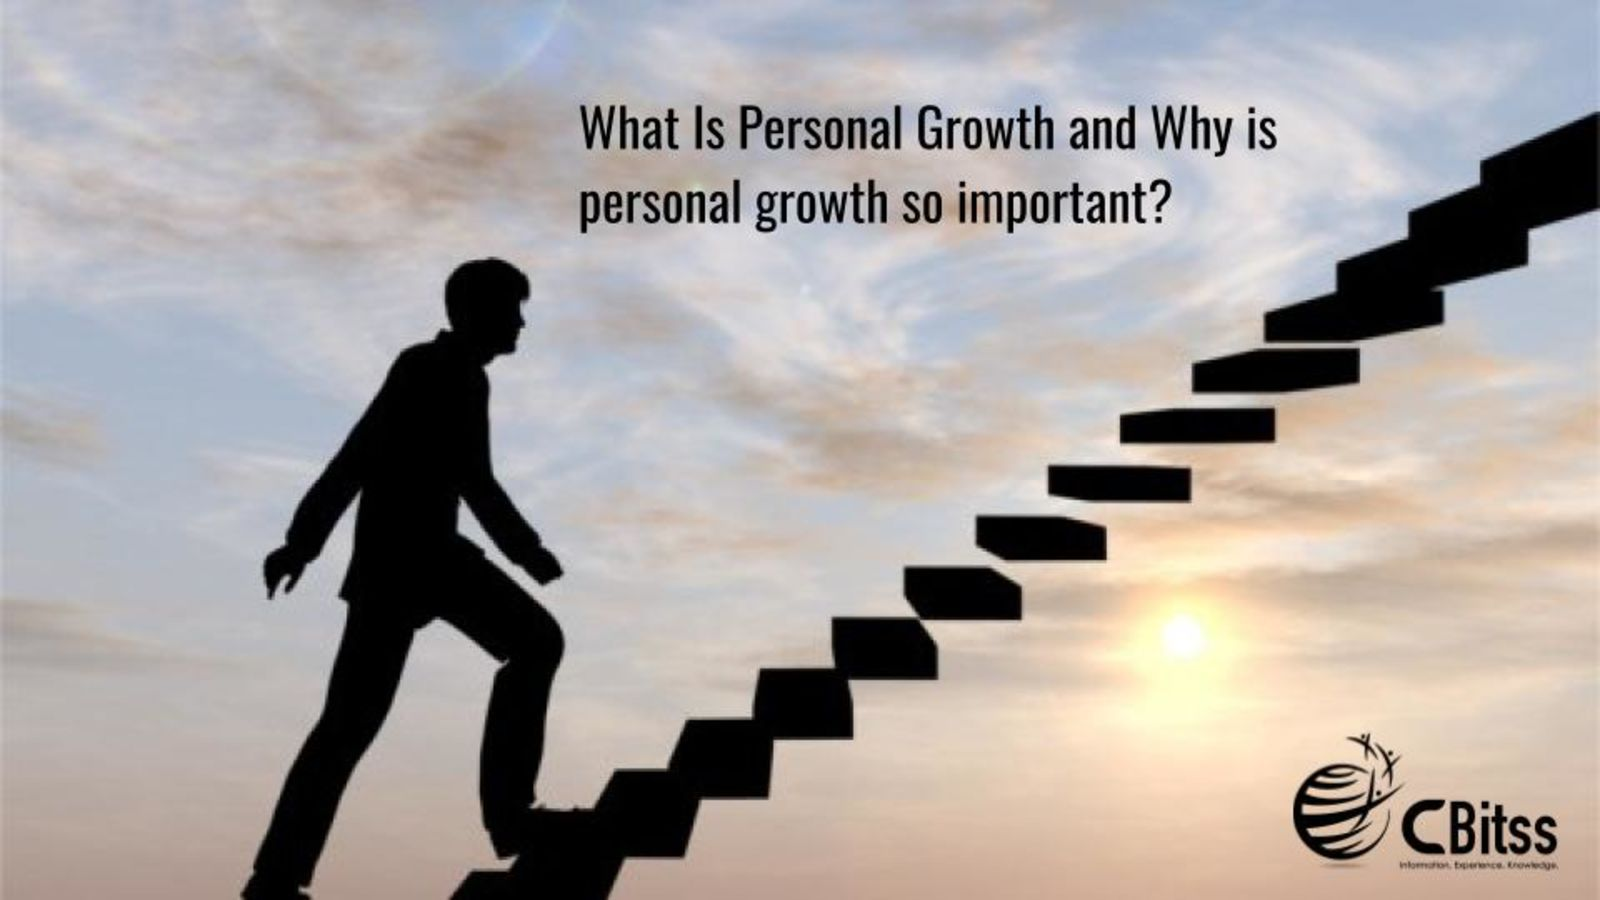 What Is Personal Growth and Why personal growth so